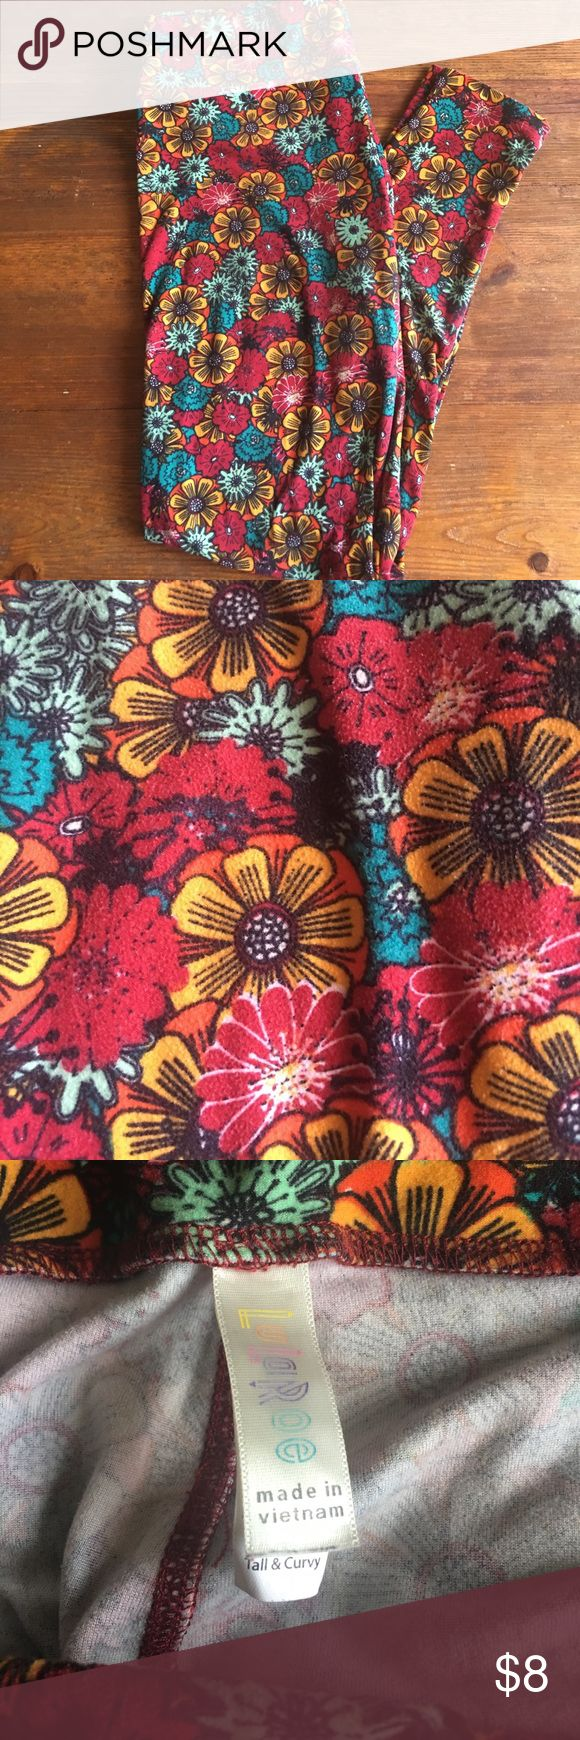 Lularoe TC leggings floral Red leggings with flowers. Some fading, and piling. Cute print. Tall and curvy size. Lularoe. Comes from clean smoke free home LuLaRoe Pants Leggings